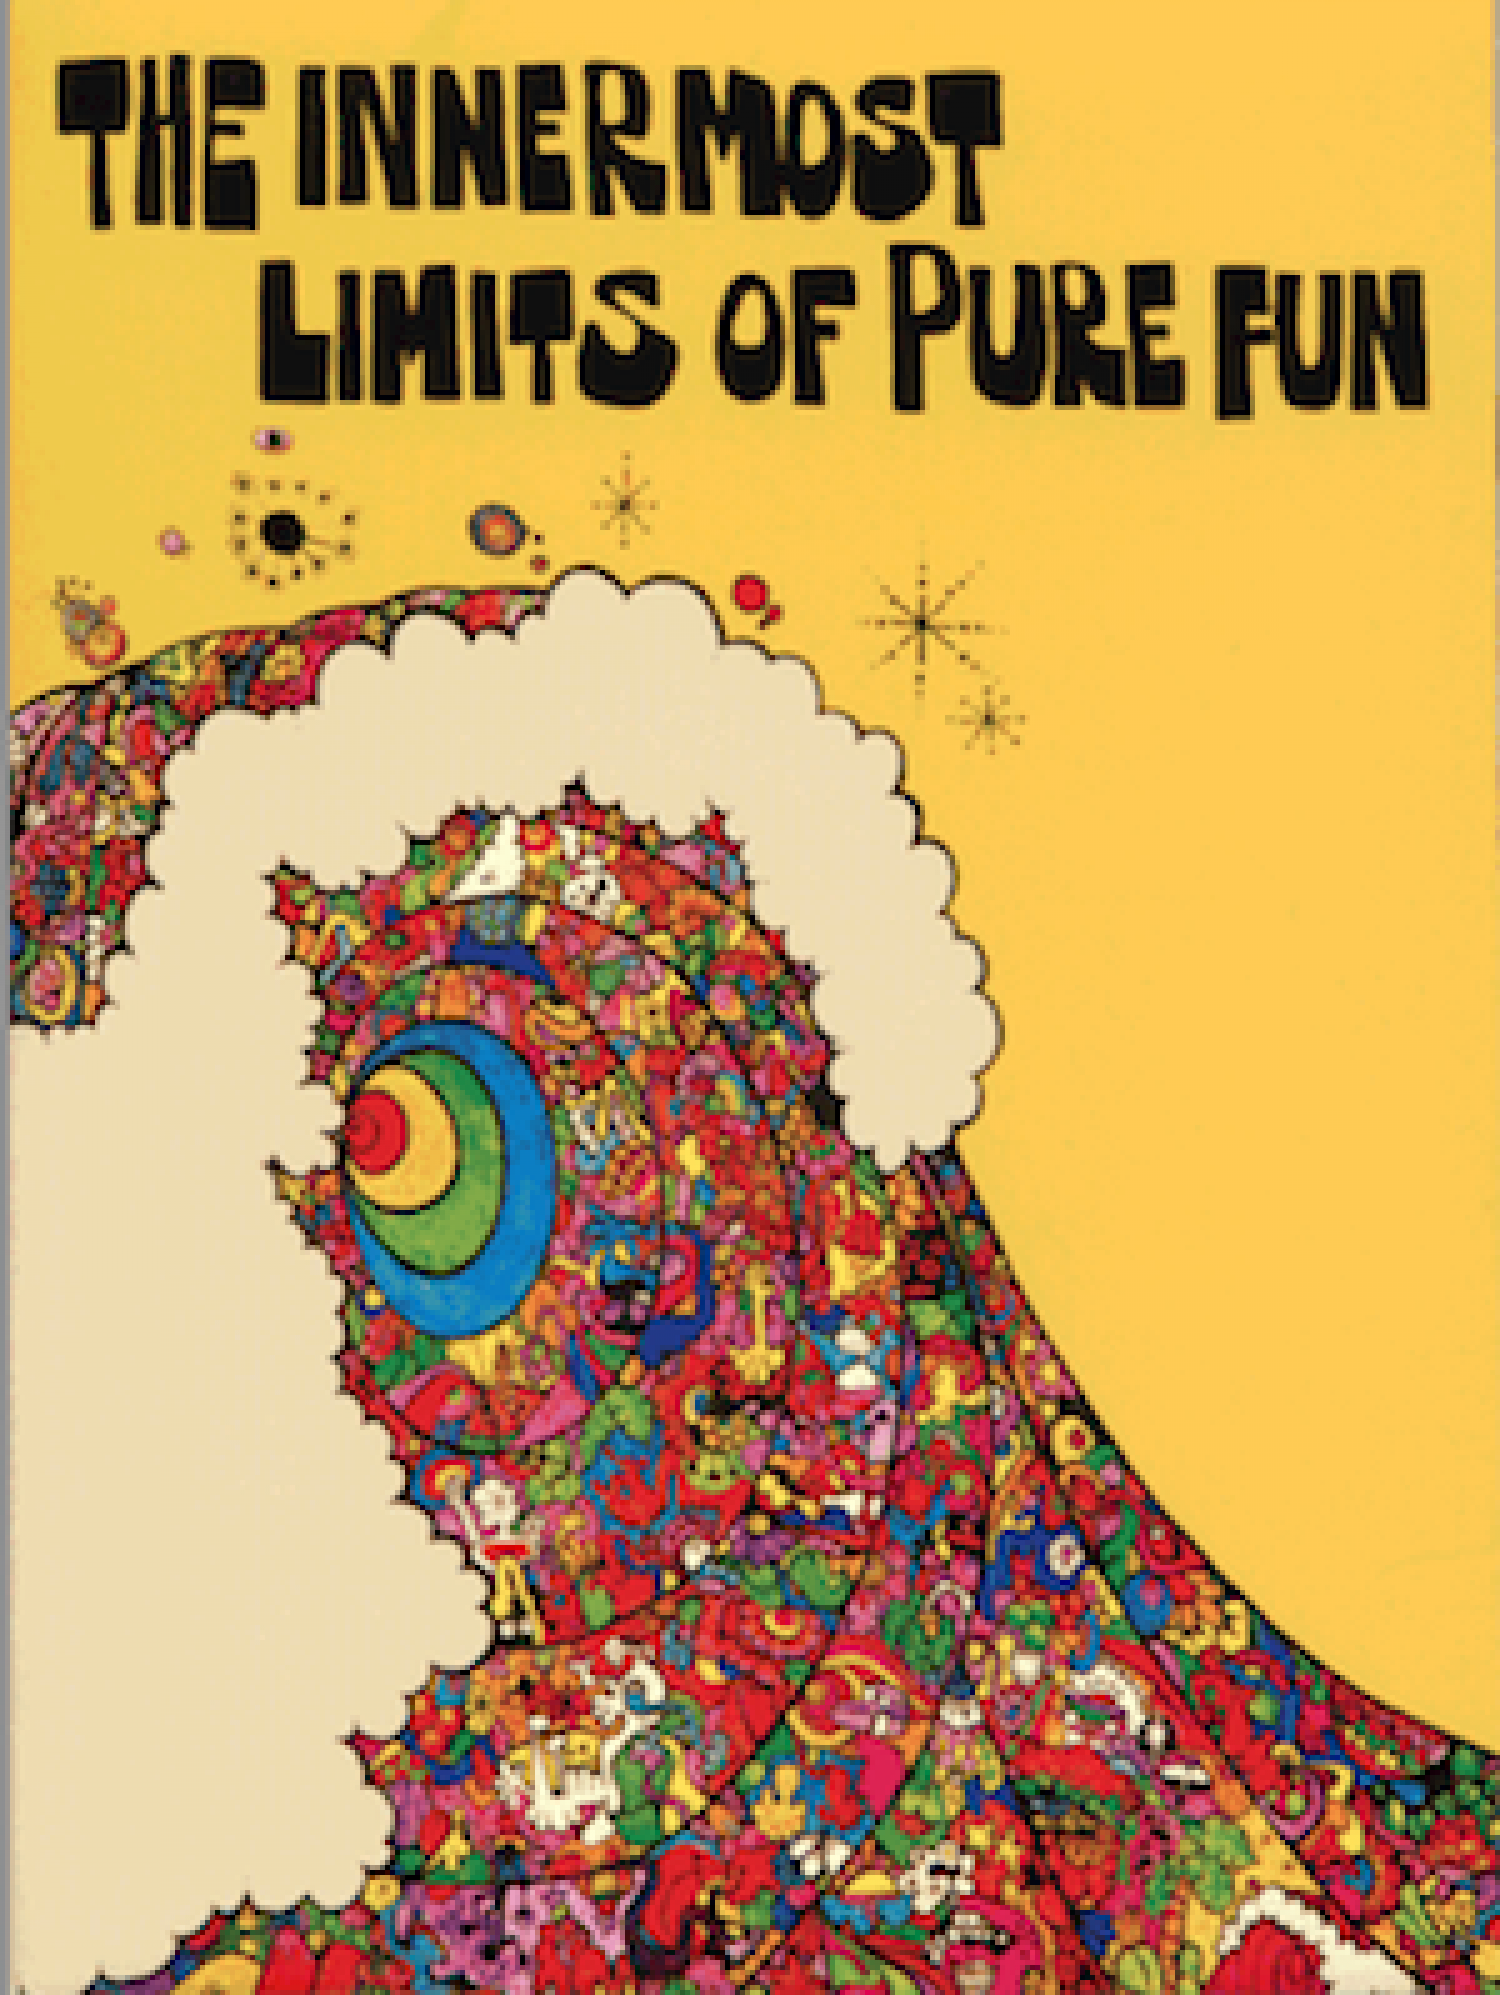 THE INNERMOST LINITS OF PURE FUN